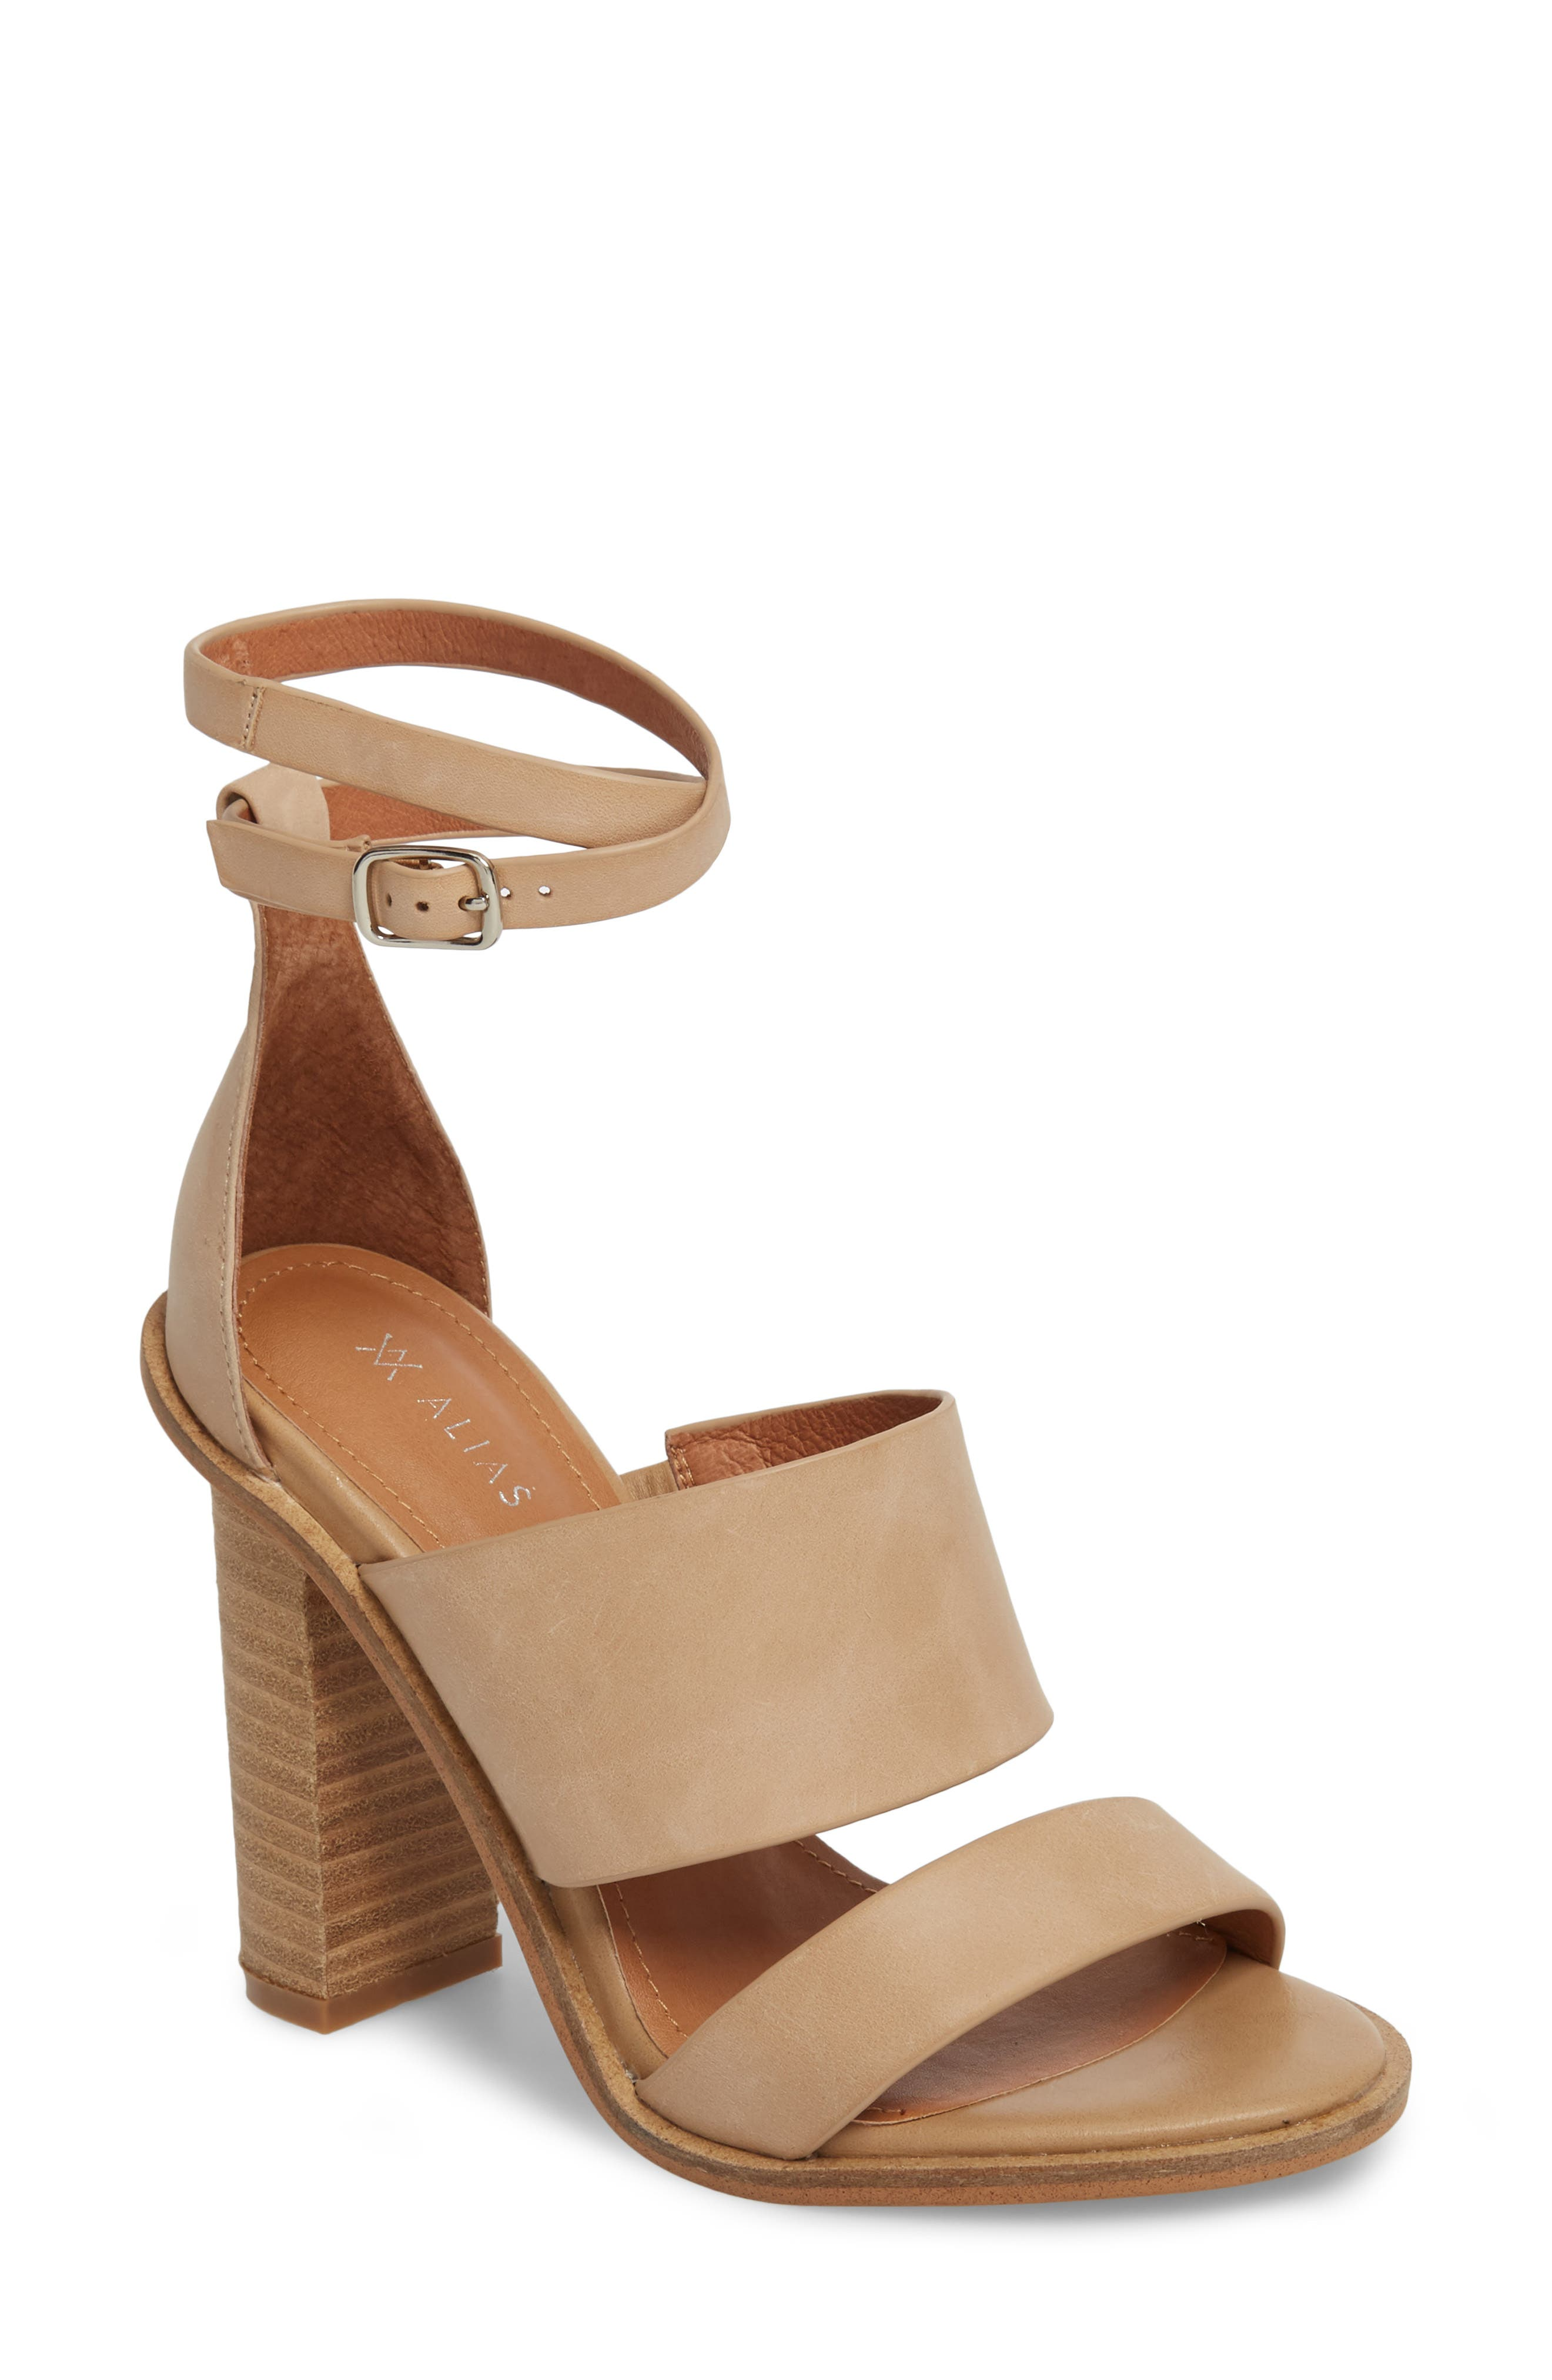 Admiral Ankle Wrap Sandal,                         Main,                         color, Natural Leather